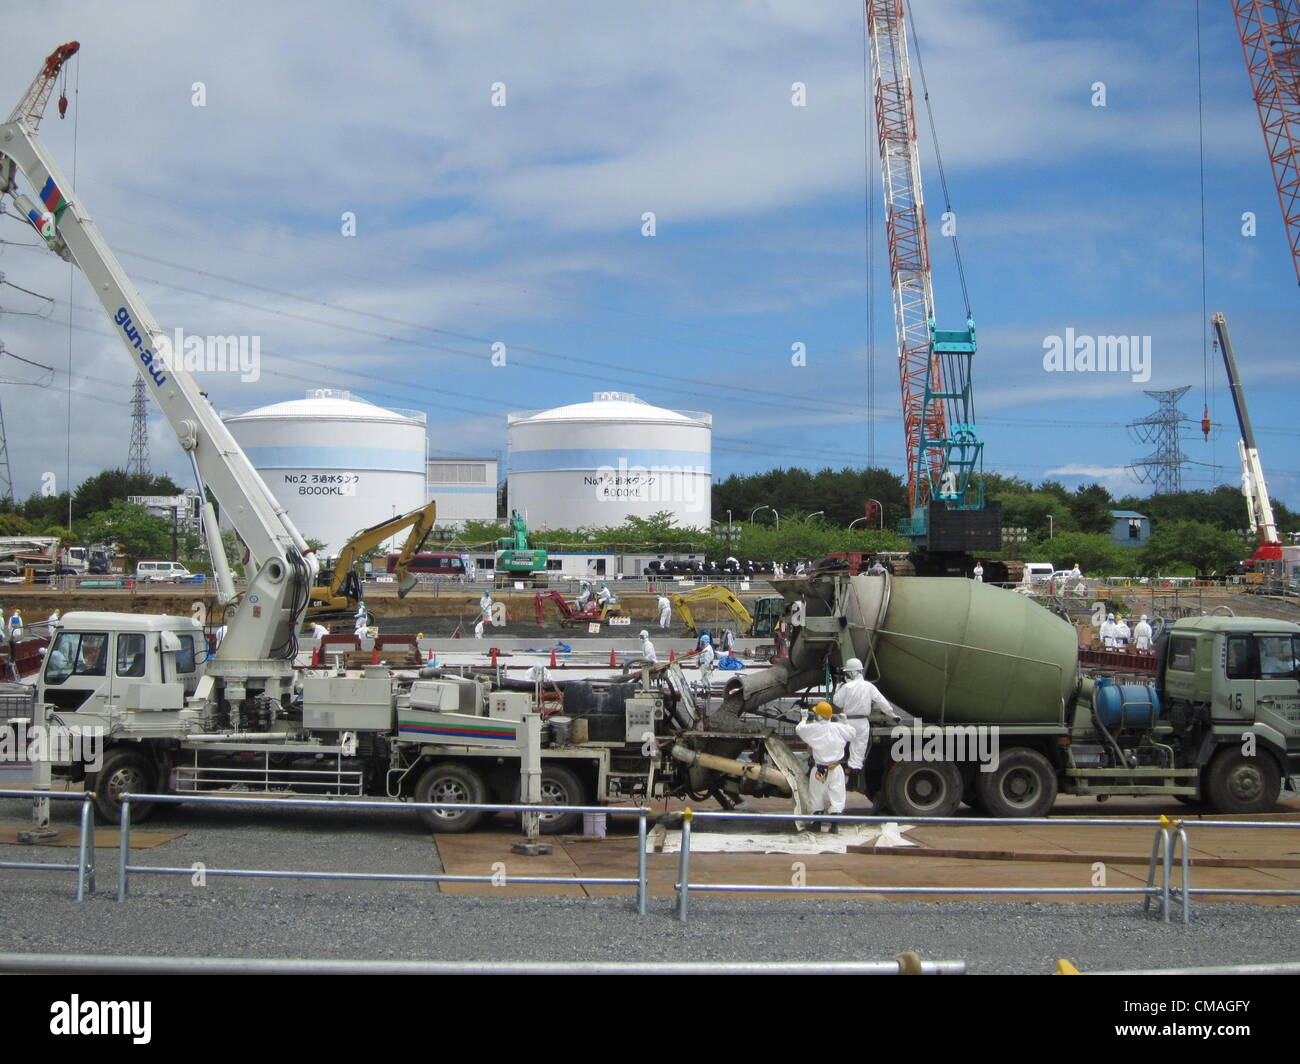 July 5, 2012 - Fukushima, Japan - In this handout picture taken on June 11, 2012 released by Tokyo Electric Power Stock Photo